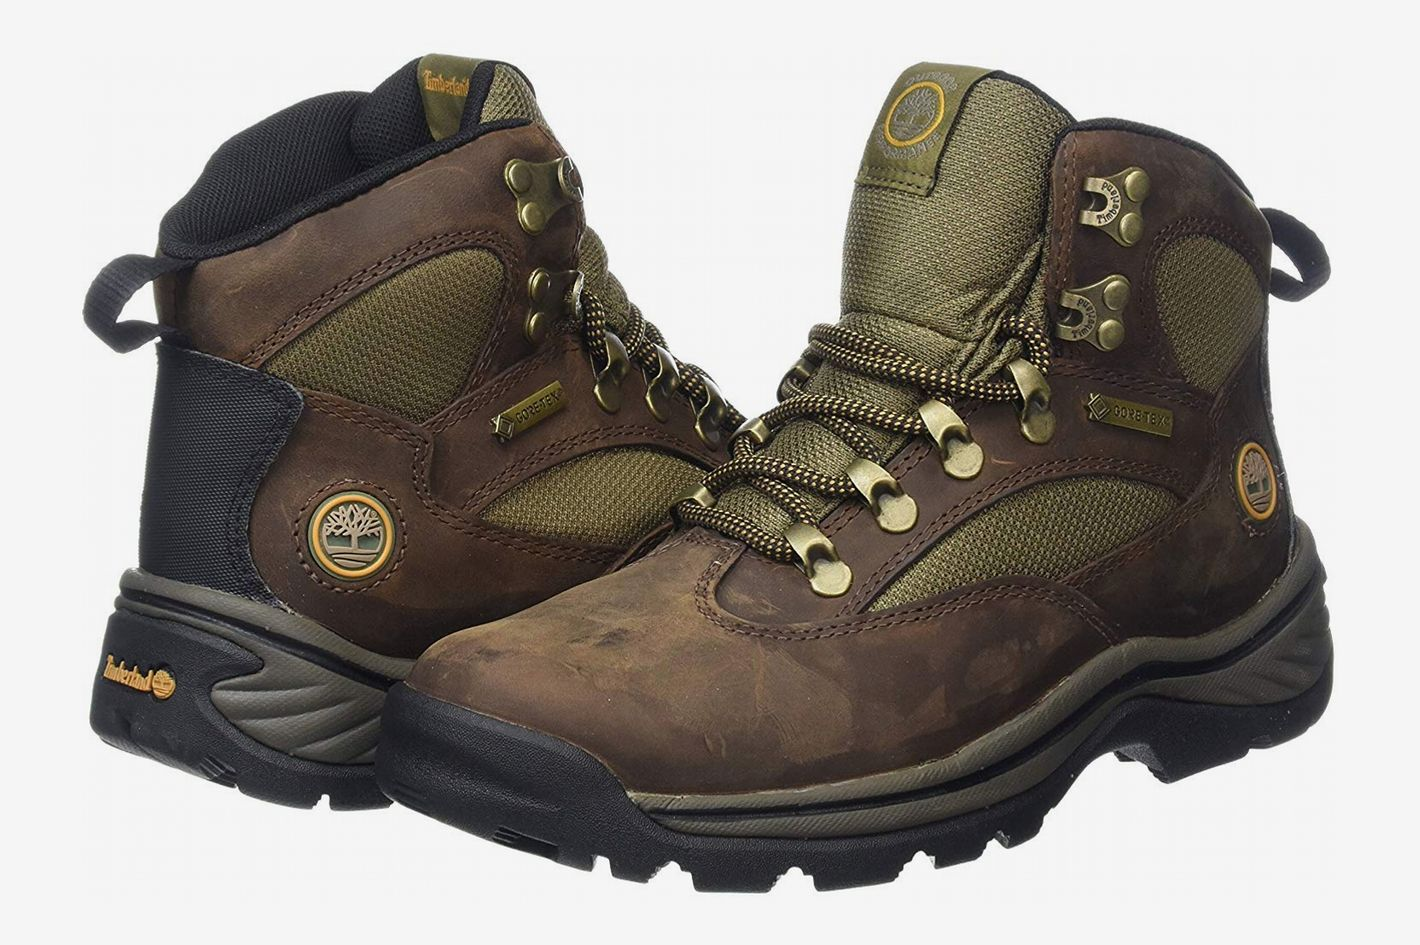 5b1c2fb3665 21 Best Women's Hiking Boots to Buy 2019